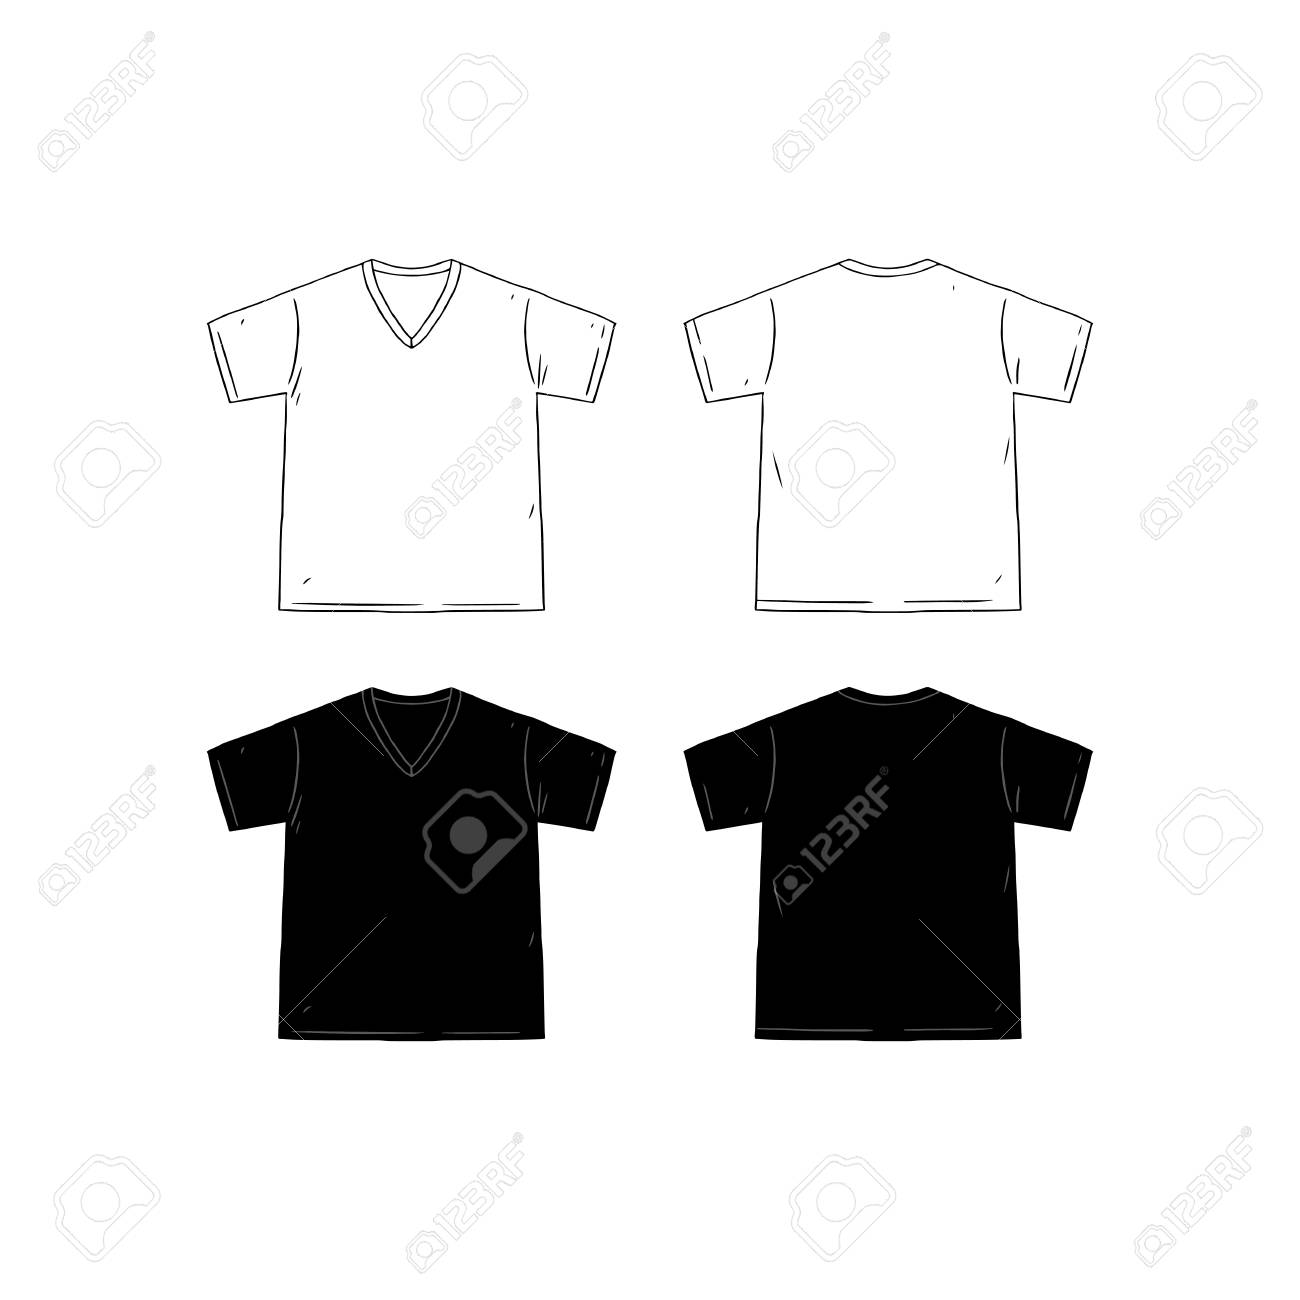 31b6725efa00 Set of blank v-neck t-shirt design template hand drawn vector illustration.